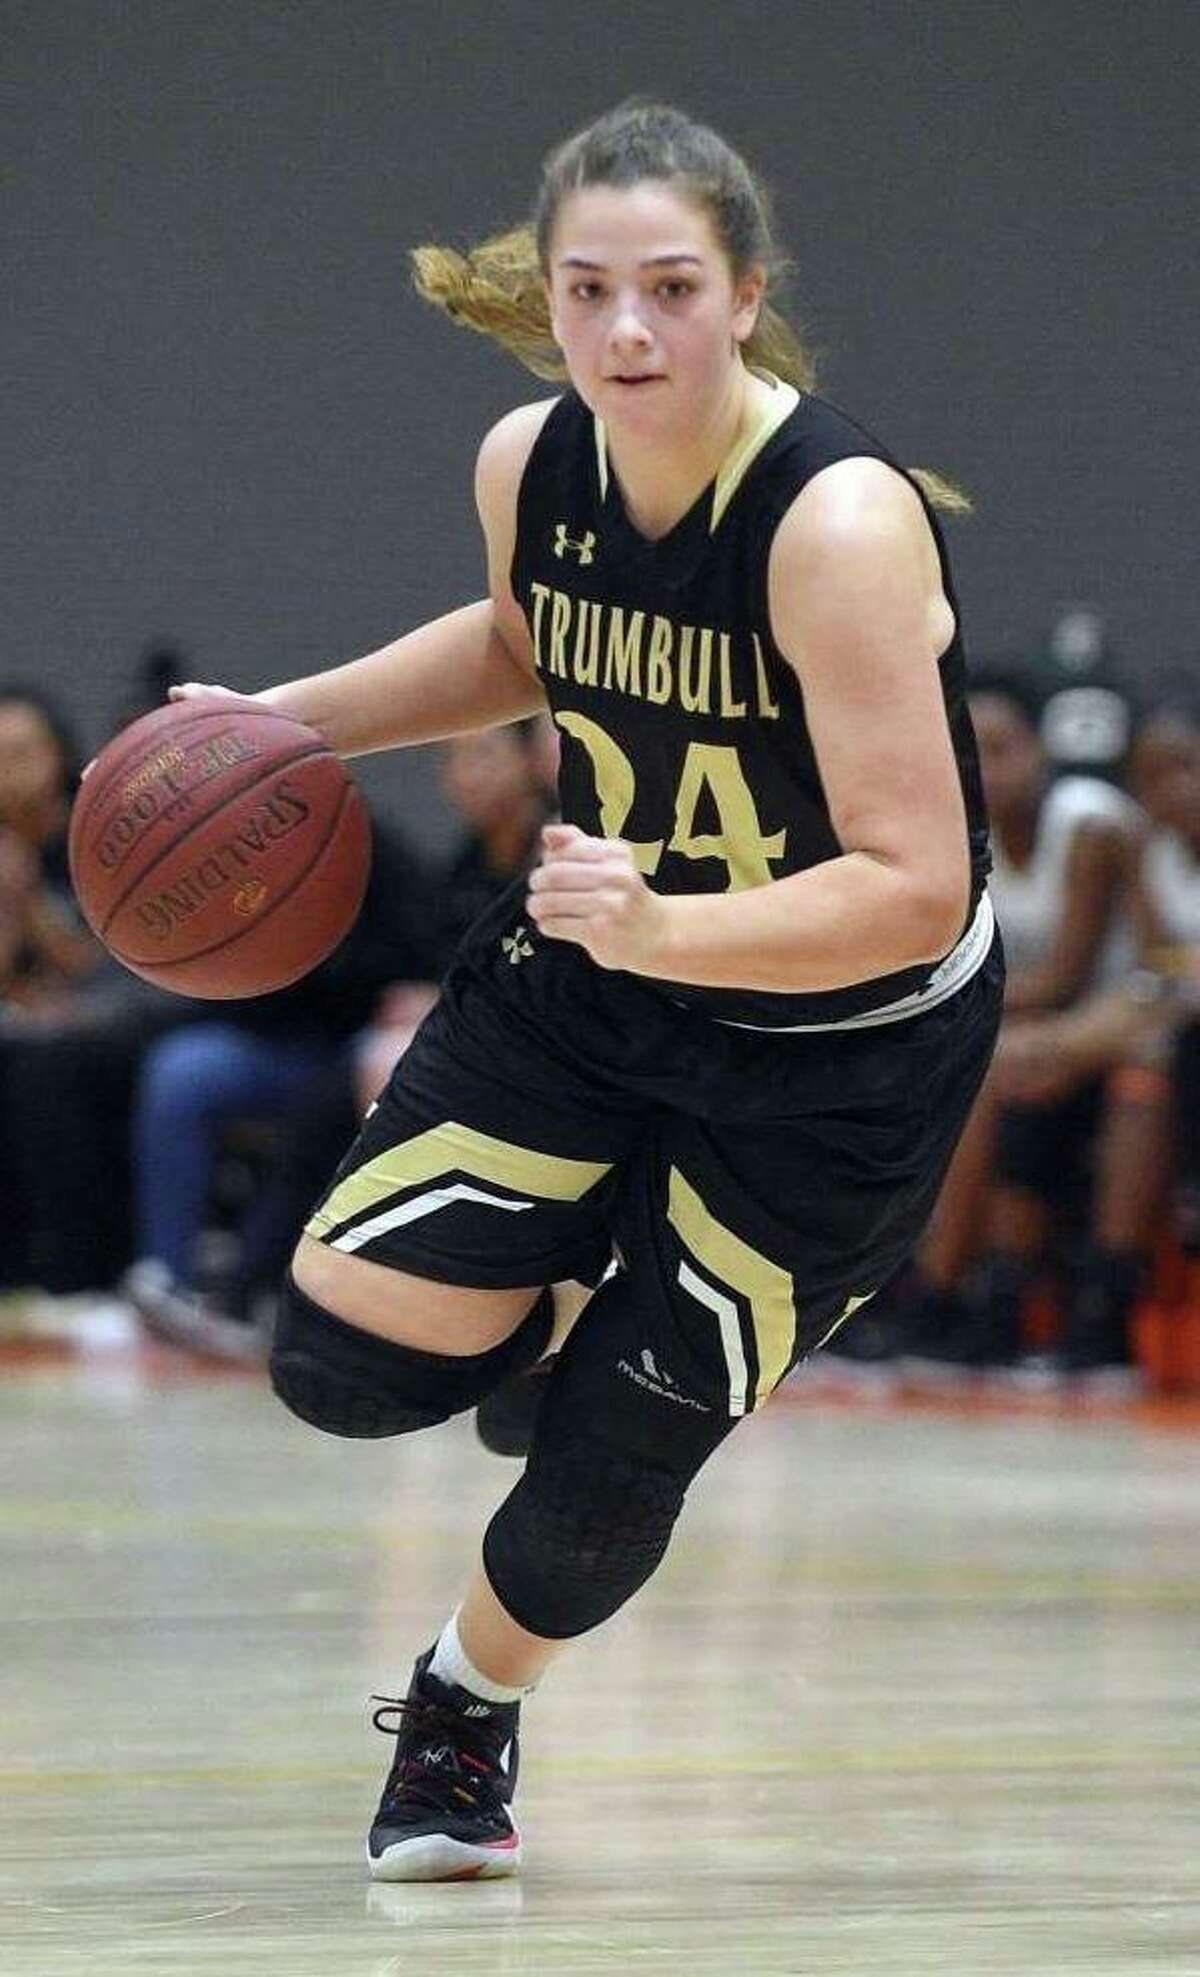 Cassi Barbato scored a game-high 27 points as Trumbull defeated Westhill 67-51.